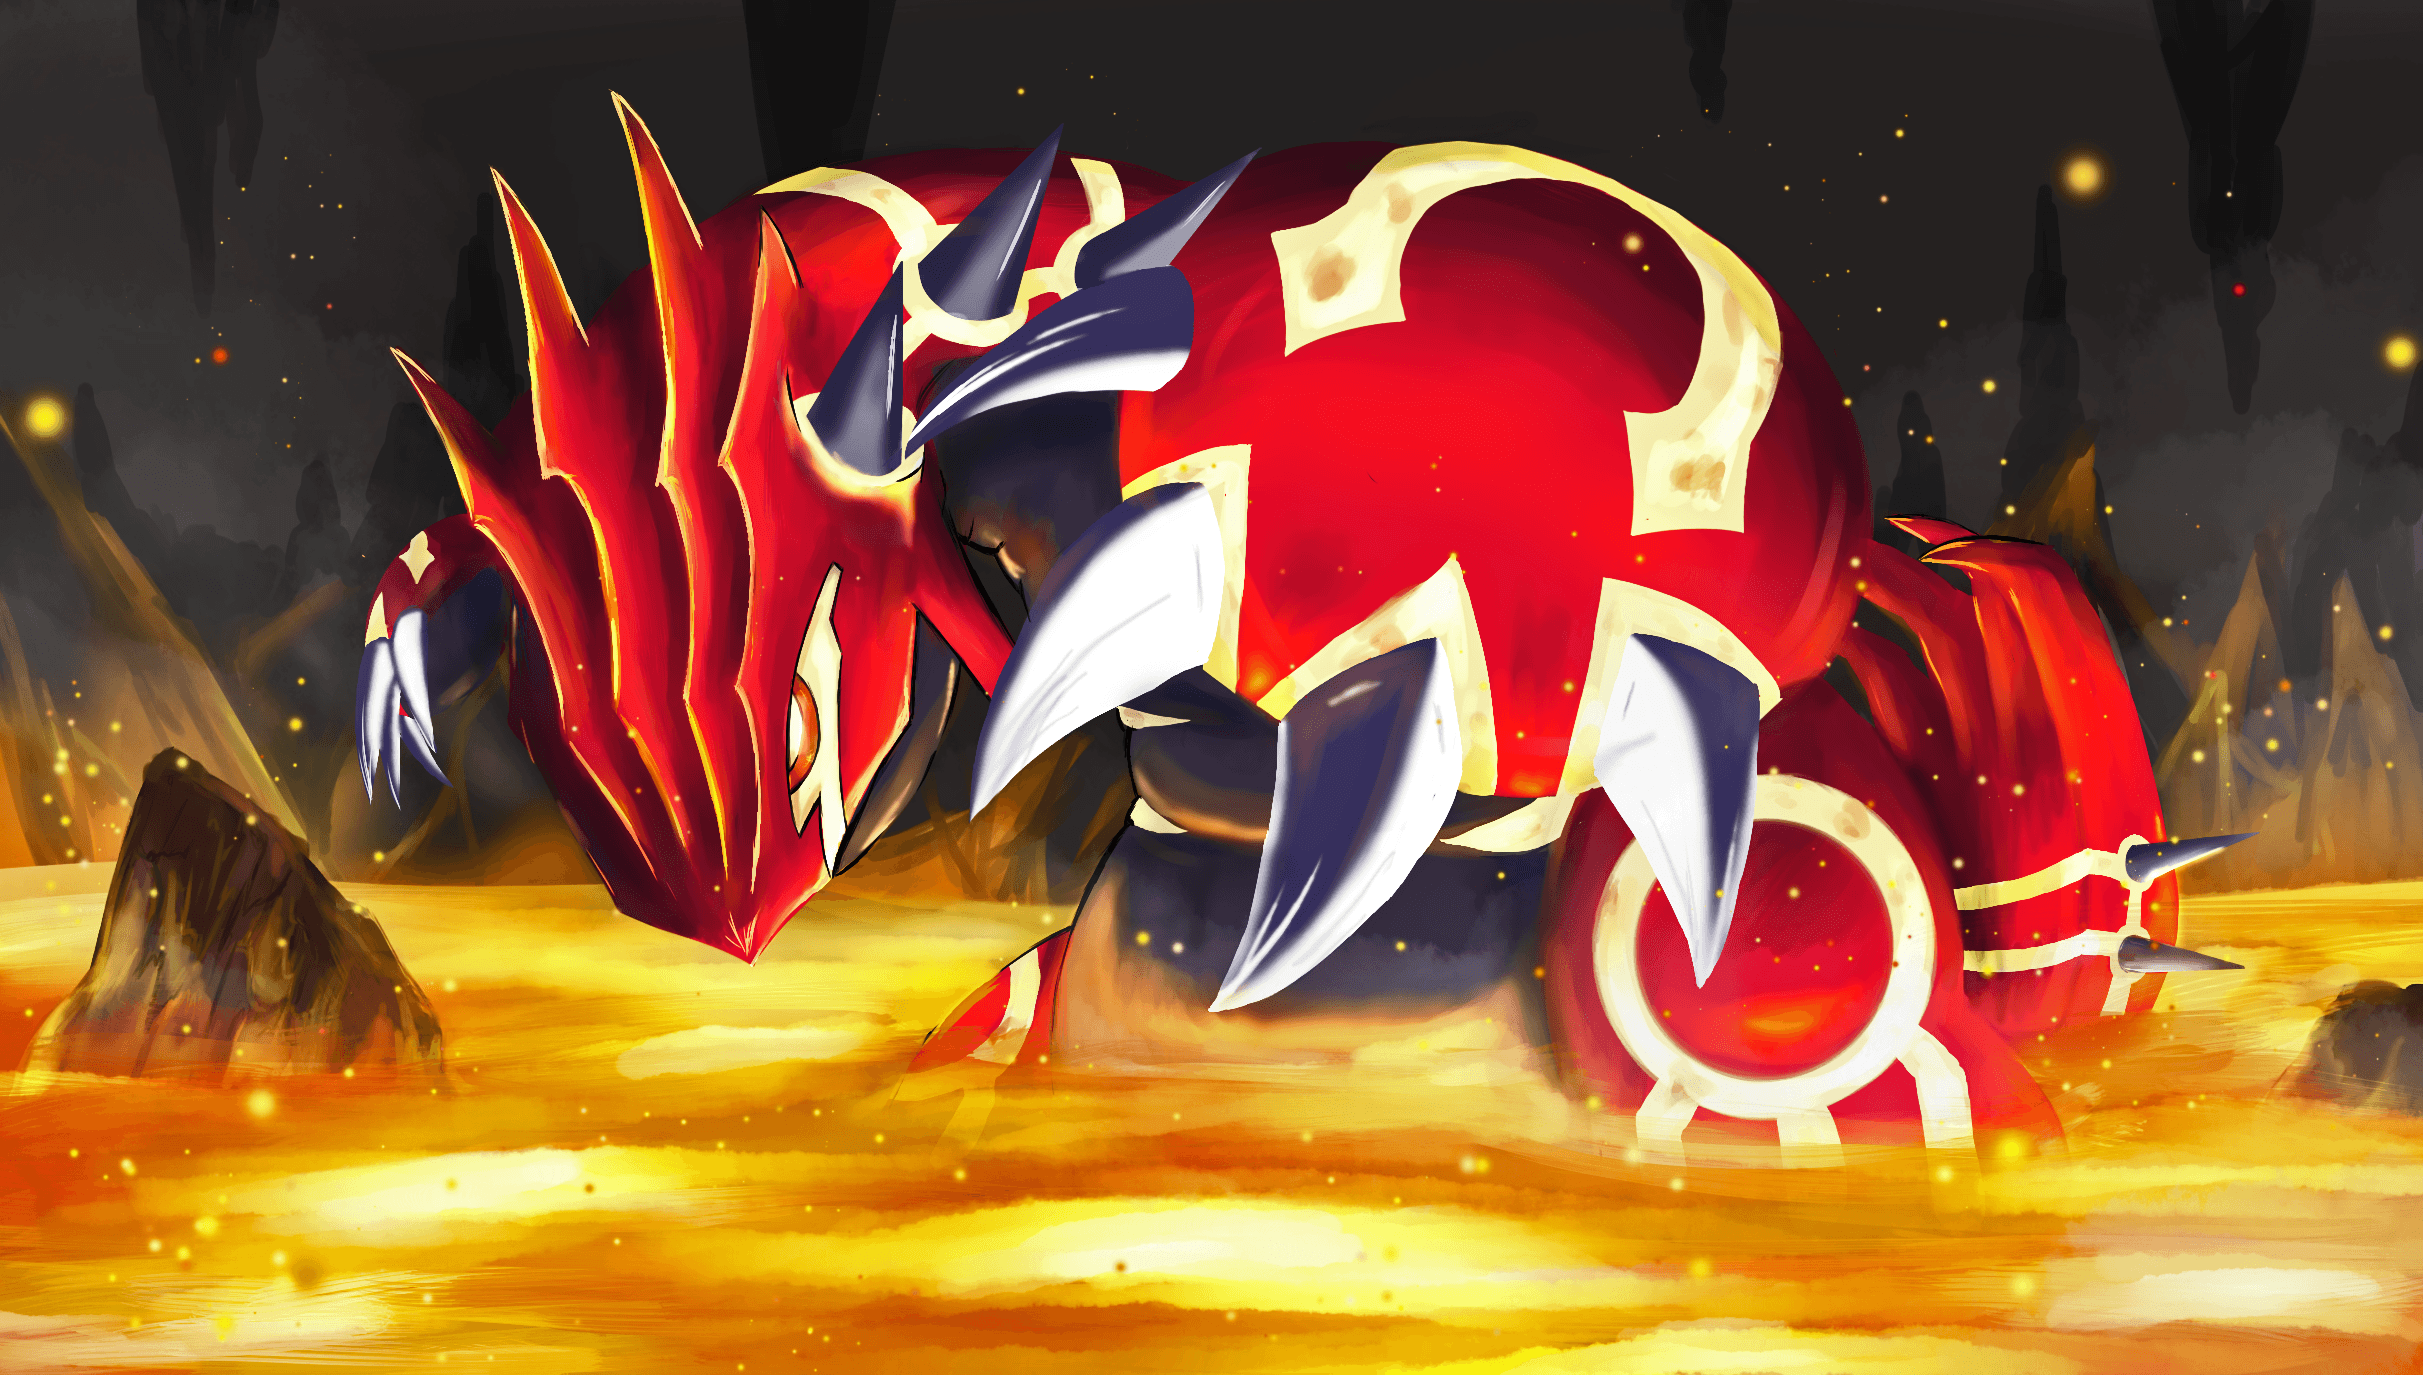 Groudon Wallpapers Top Free Groudon Backgrounds